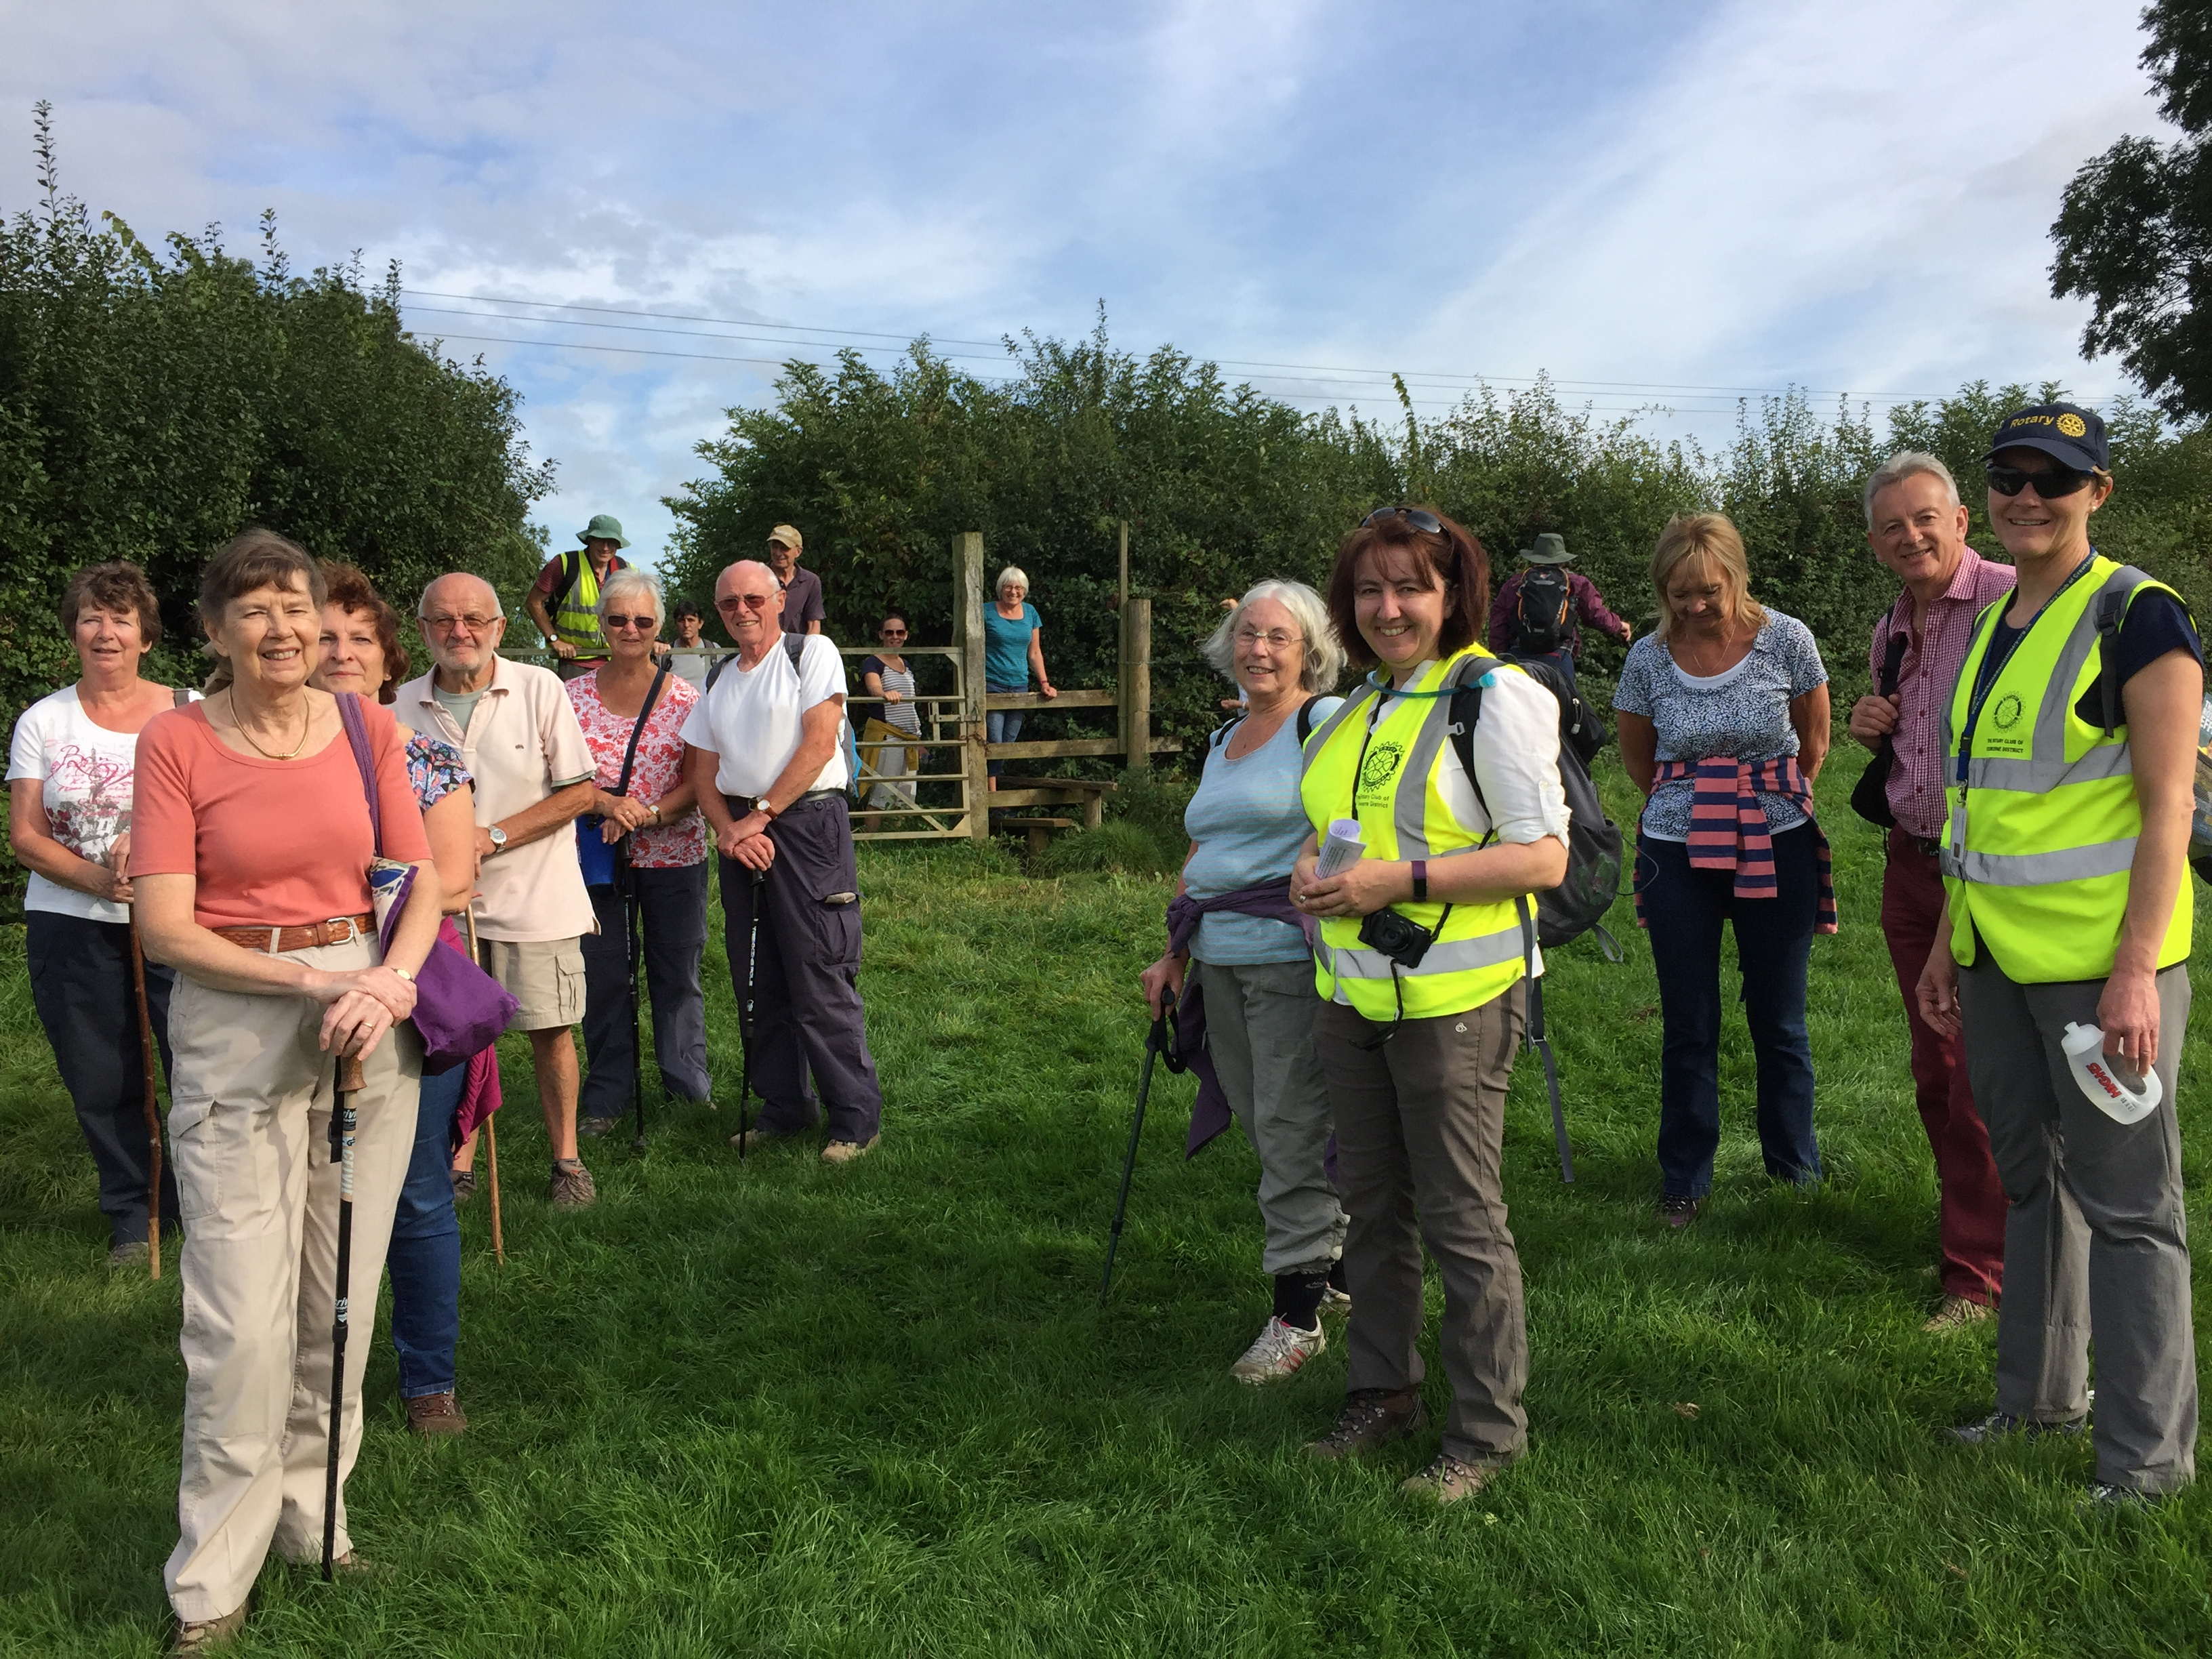 the bounders' crossing a stile into a field with Rotary Members Caroline Dredge and Sarah Holley in the Hi visibility vests